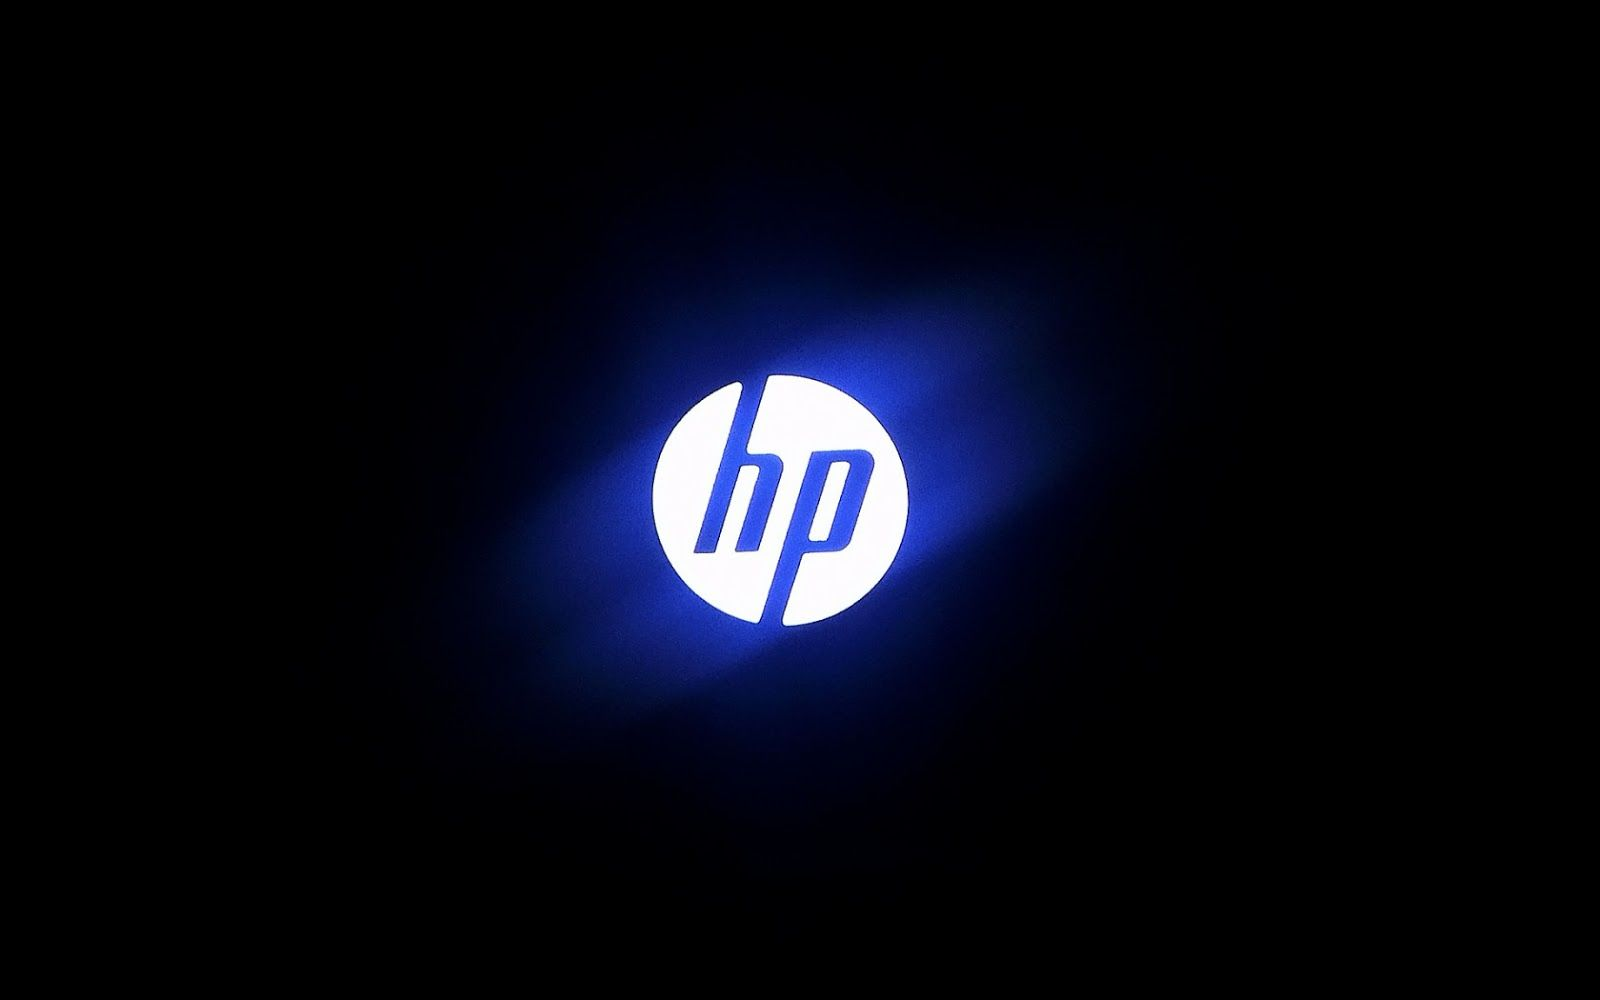 Hp Wallpaper In 2020 Hp Logo Hd Wallpapers For Laptop Hd Wallpaper Desktop